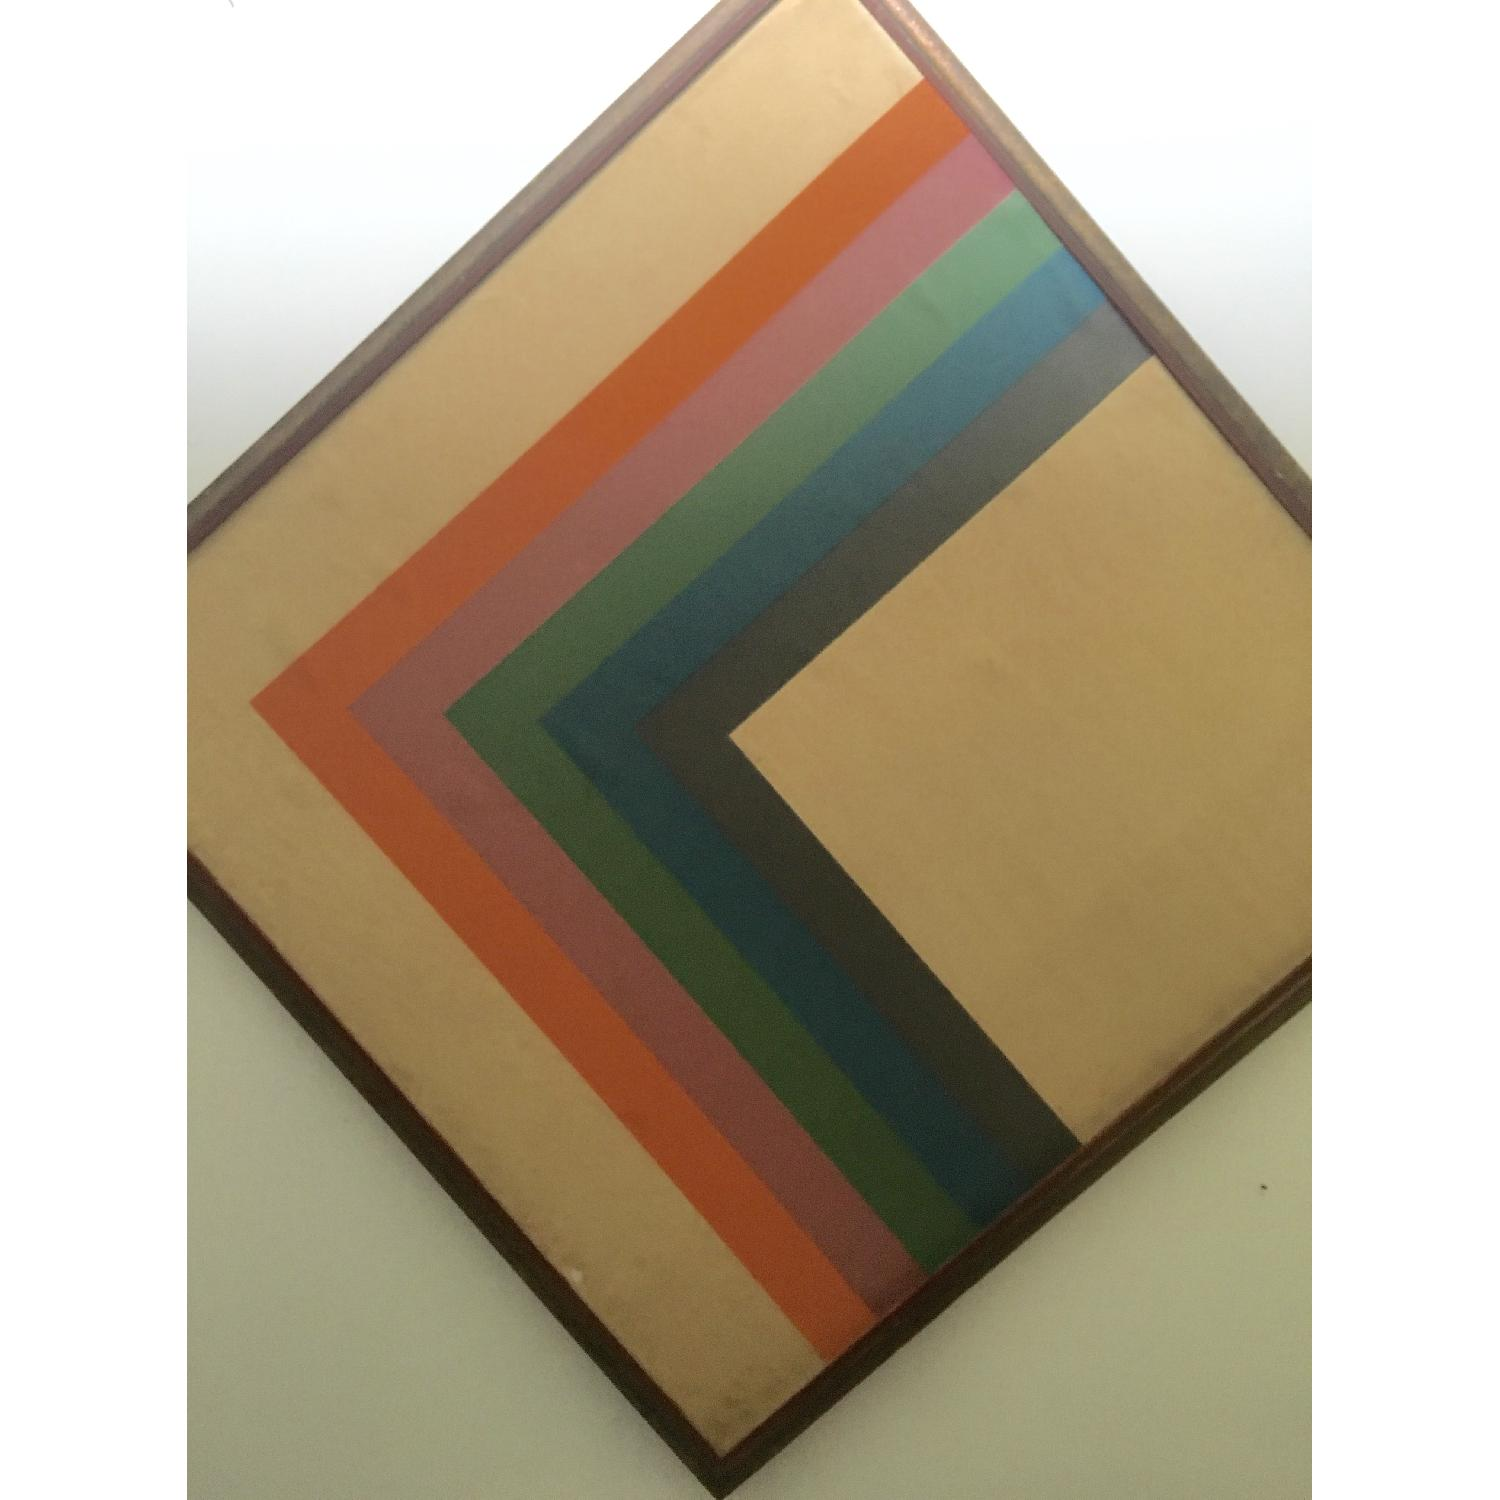 Large Format 70's Geometric Abstract Painting - image-2